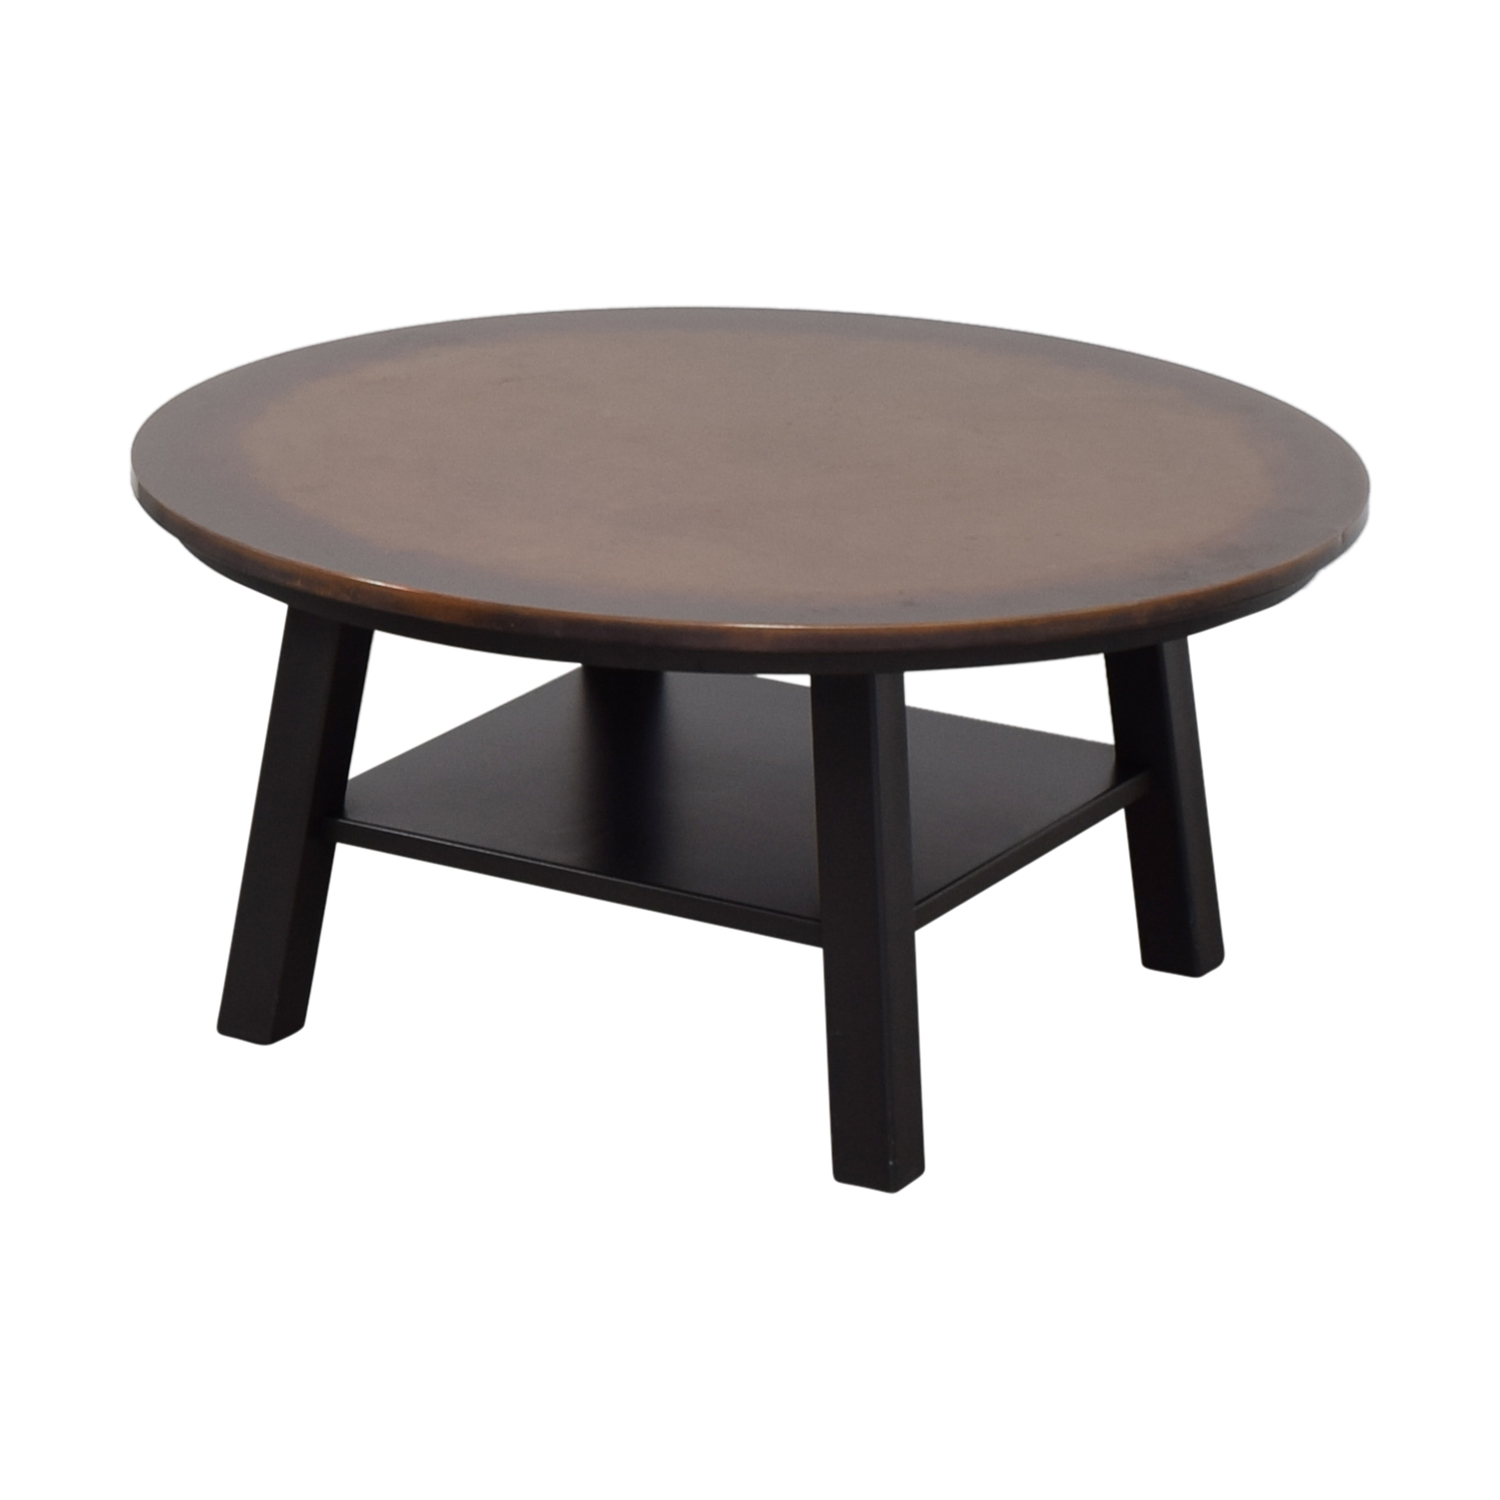 90 off round copper top coffee table tables. Black Bedroom Furniture Sets. Home Design Ideas